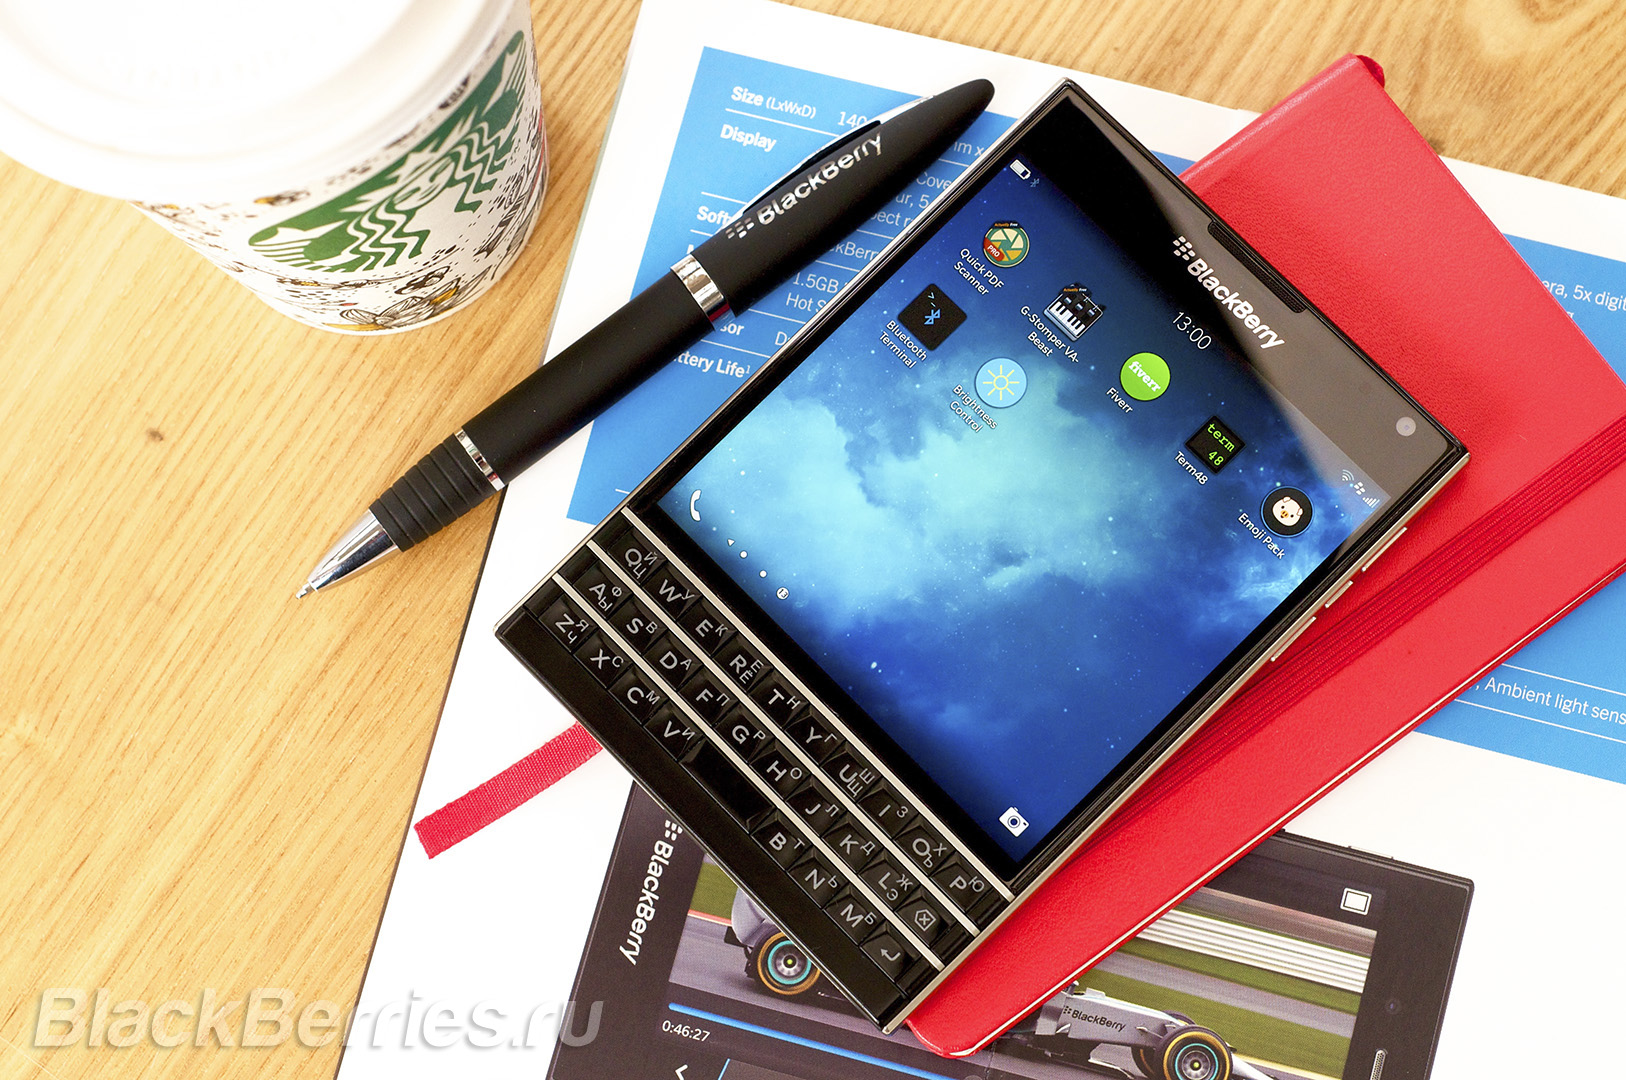 BlackBerry-Passport-App-Review-2-14